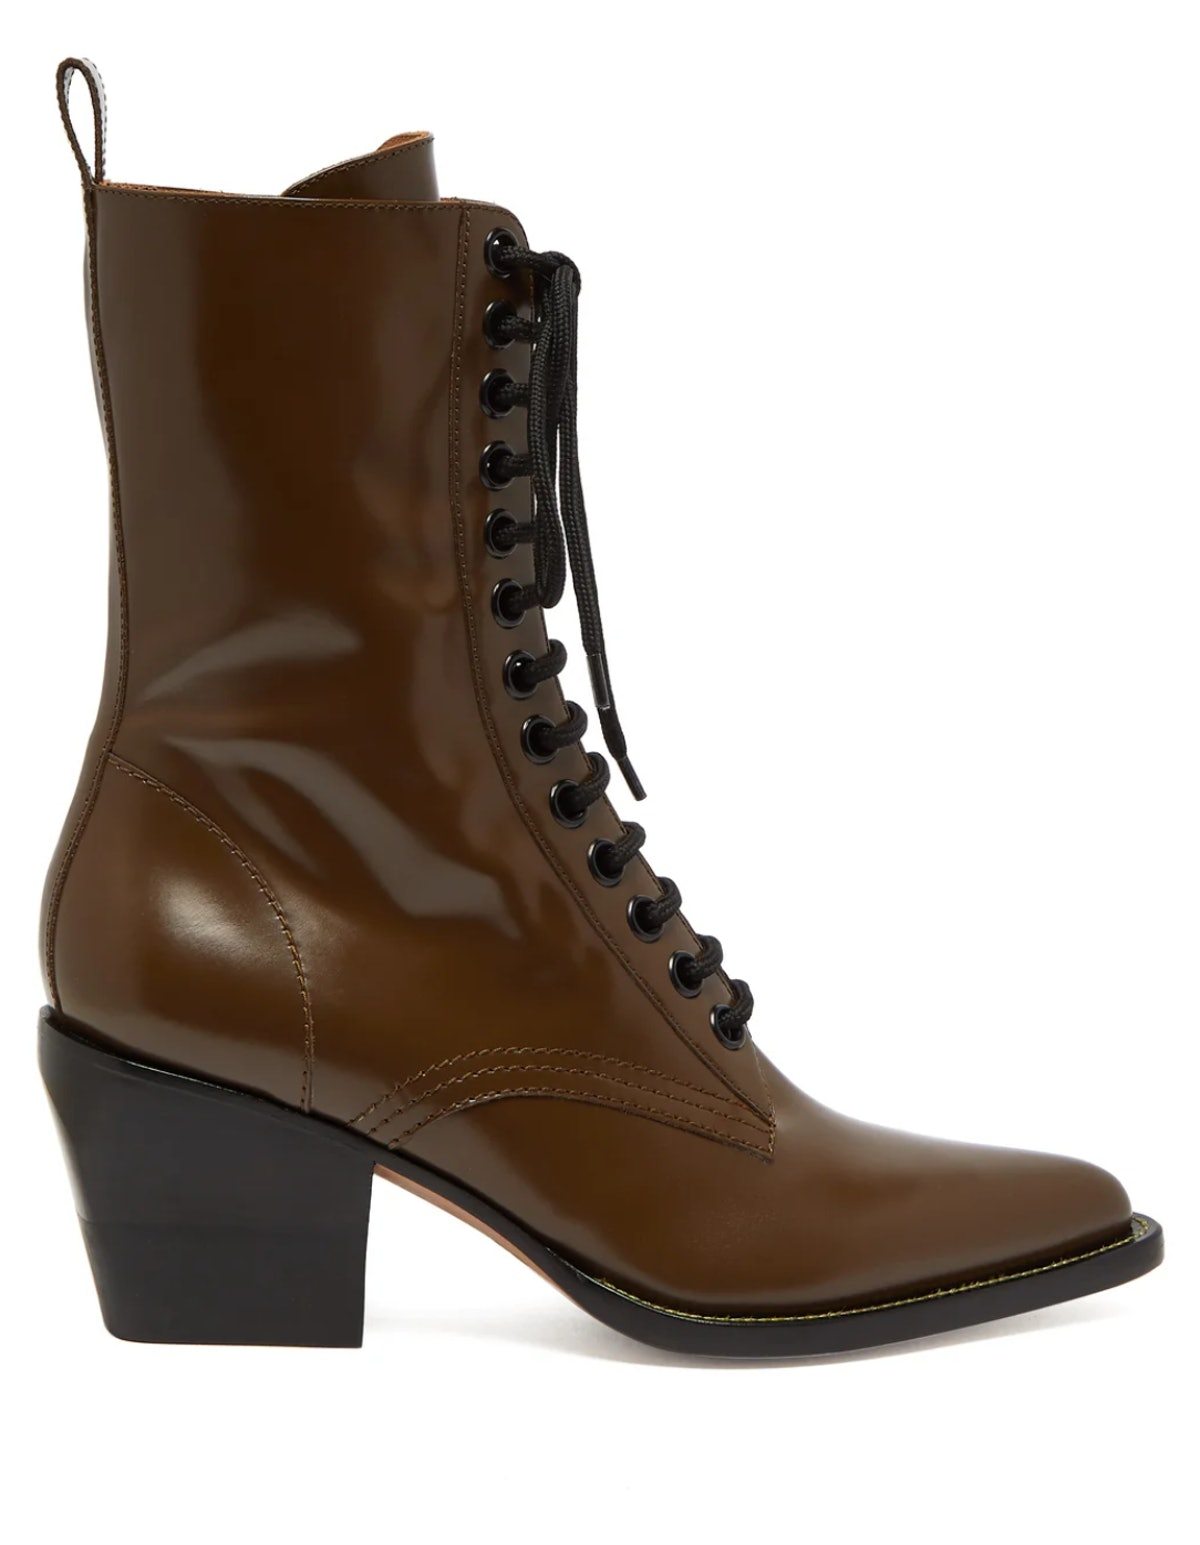 Point Toe Boot